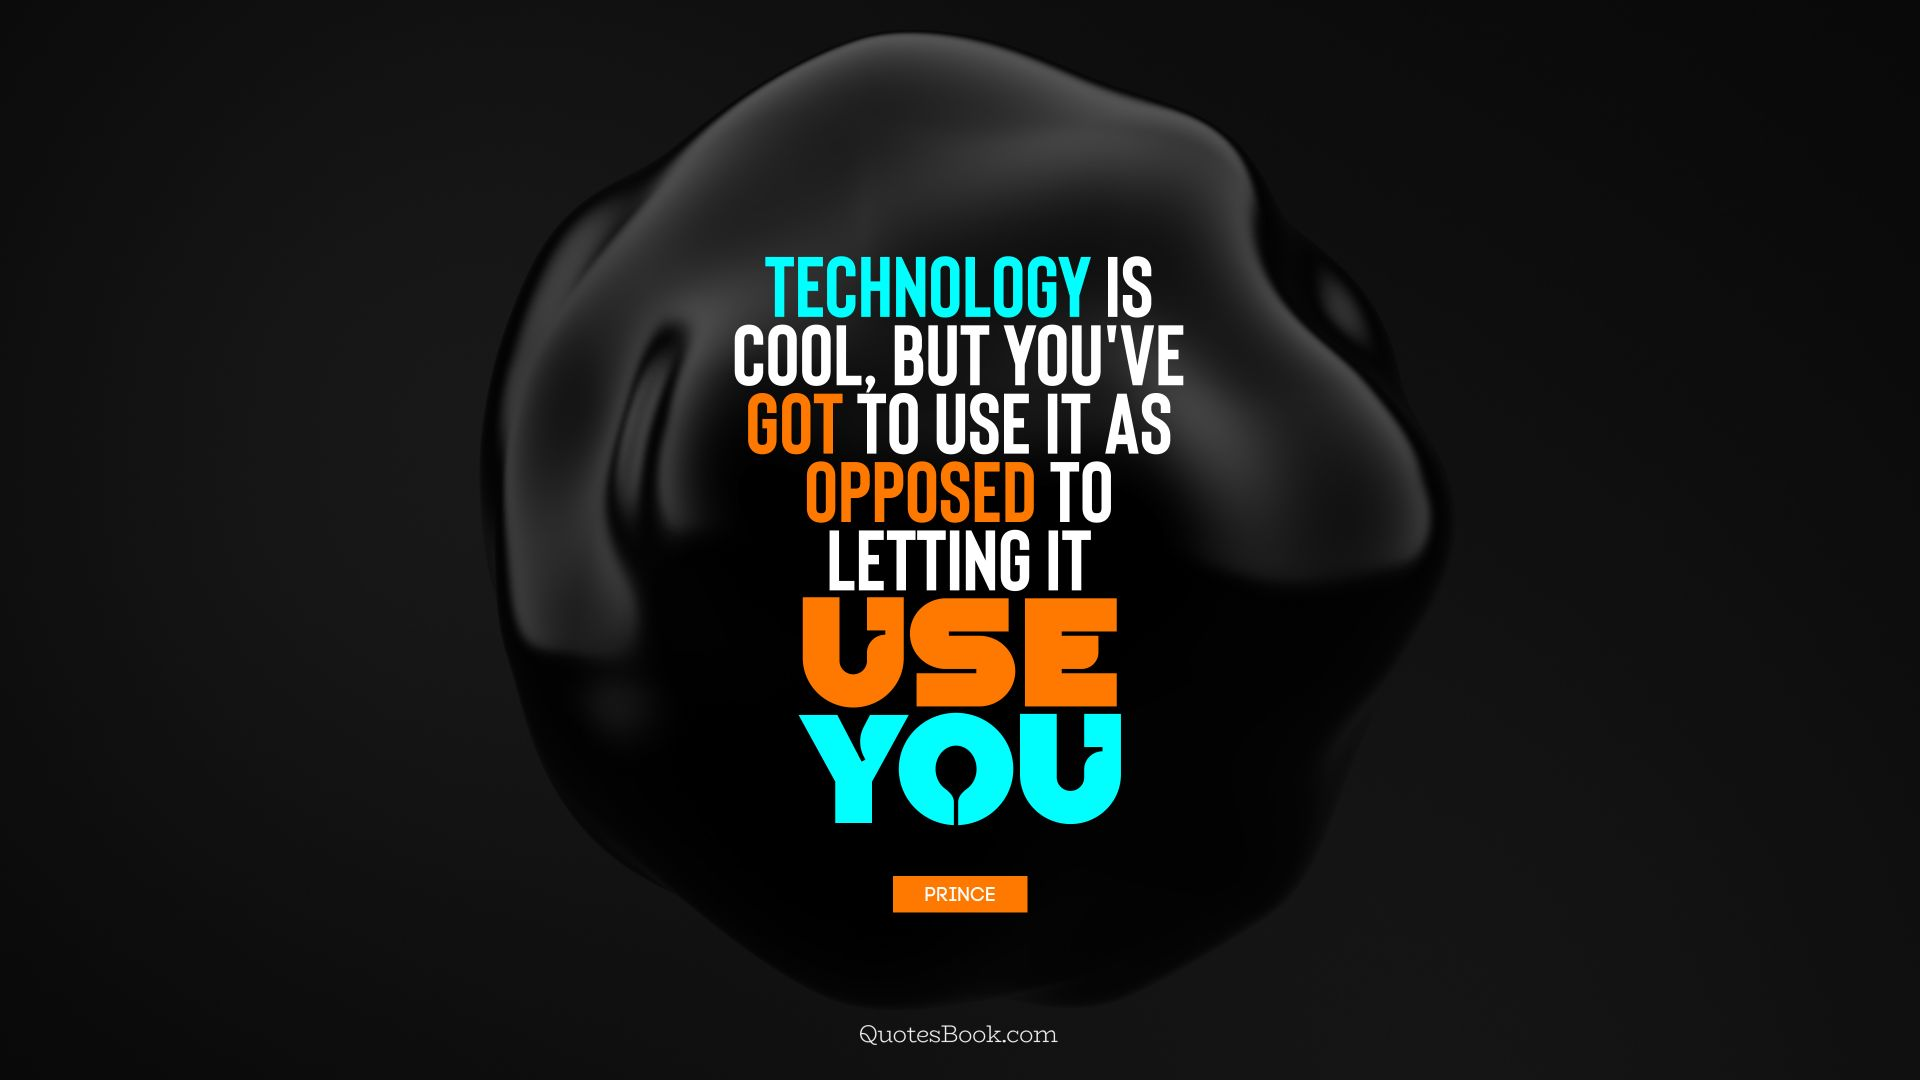 Technology is cool, but you've got to use it as opposed to letting it use you. - Quote by Prince